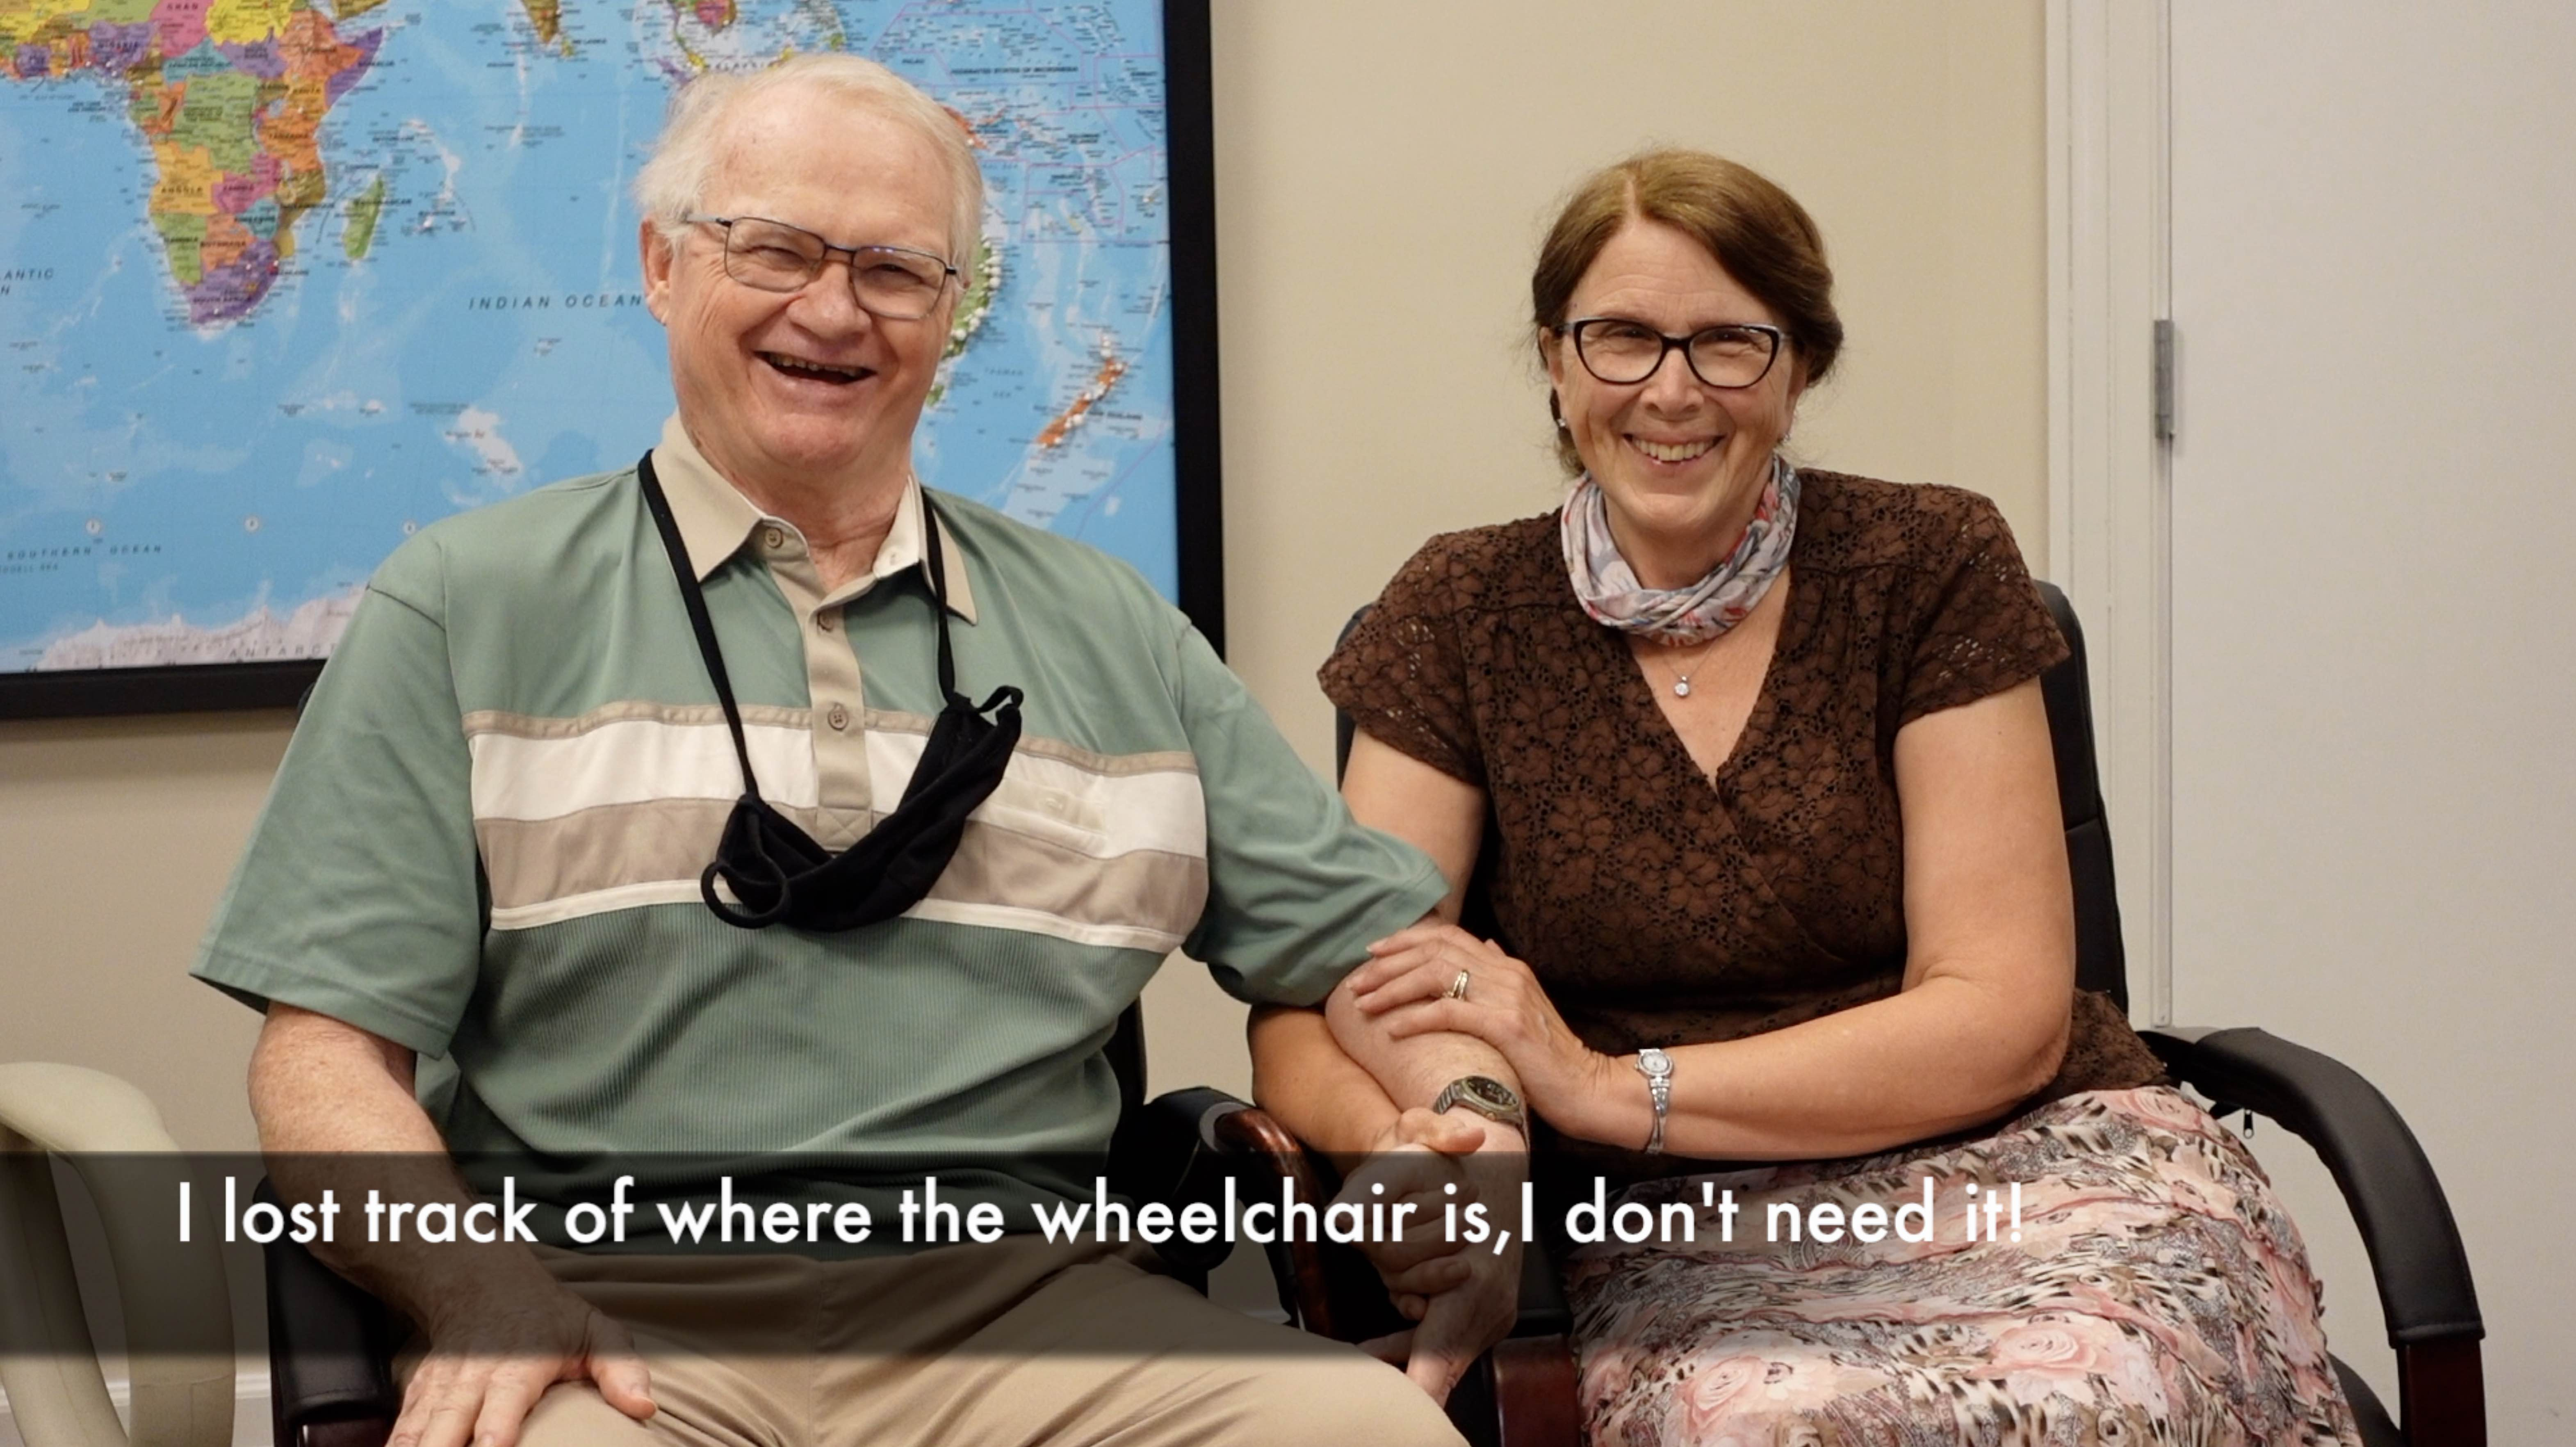 """I lost track of where the wheelchair is, I don't need it!"" after treatment by Edward Tobinick, M.D."